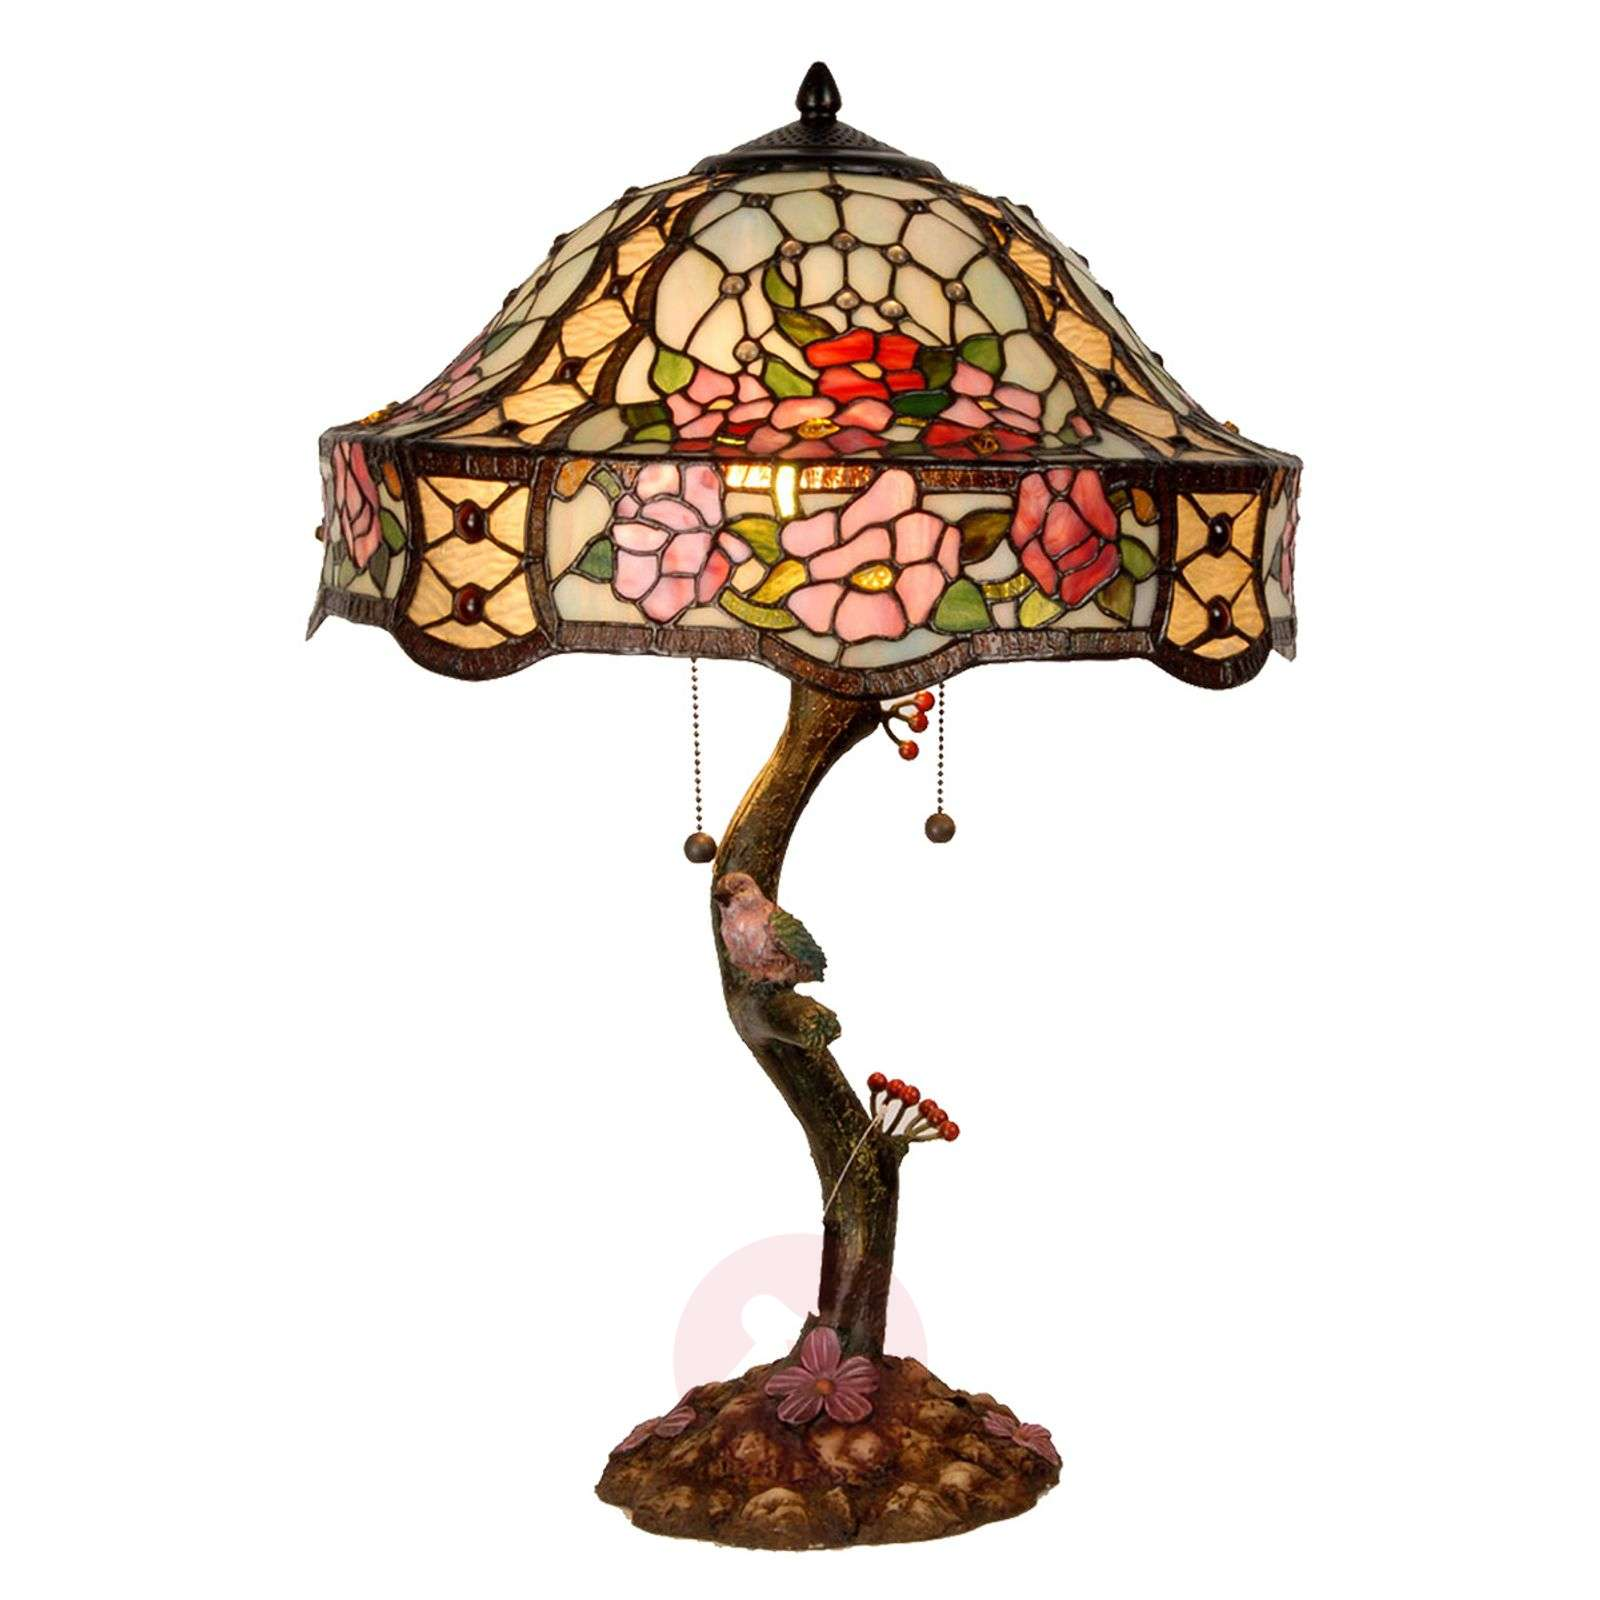 Richly-decorated table lamp Claire-6064184-01